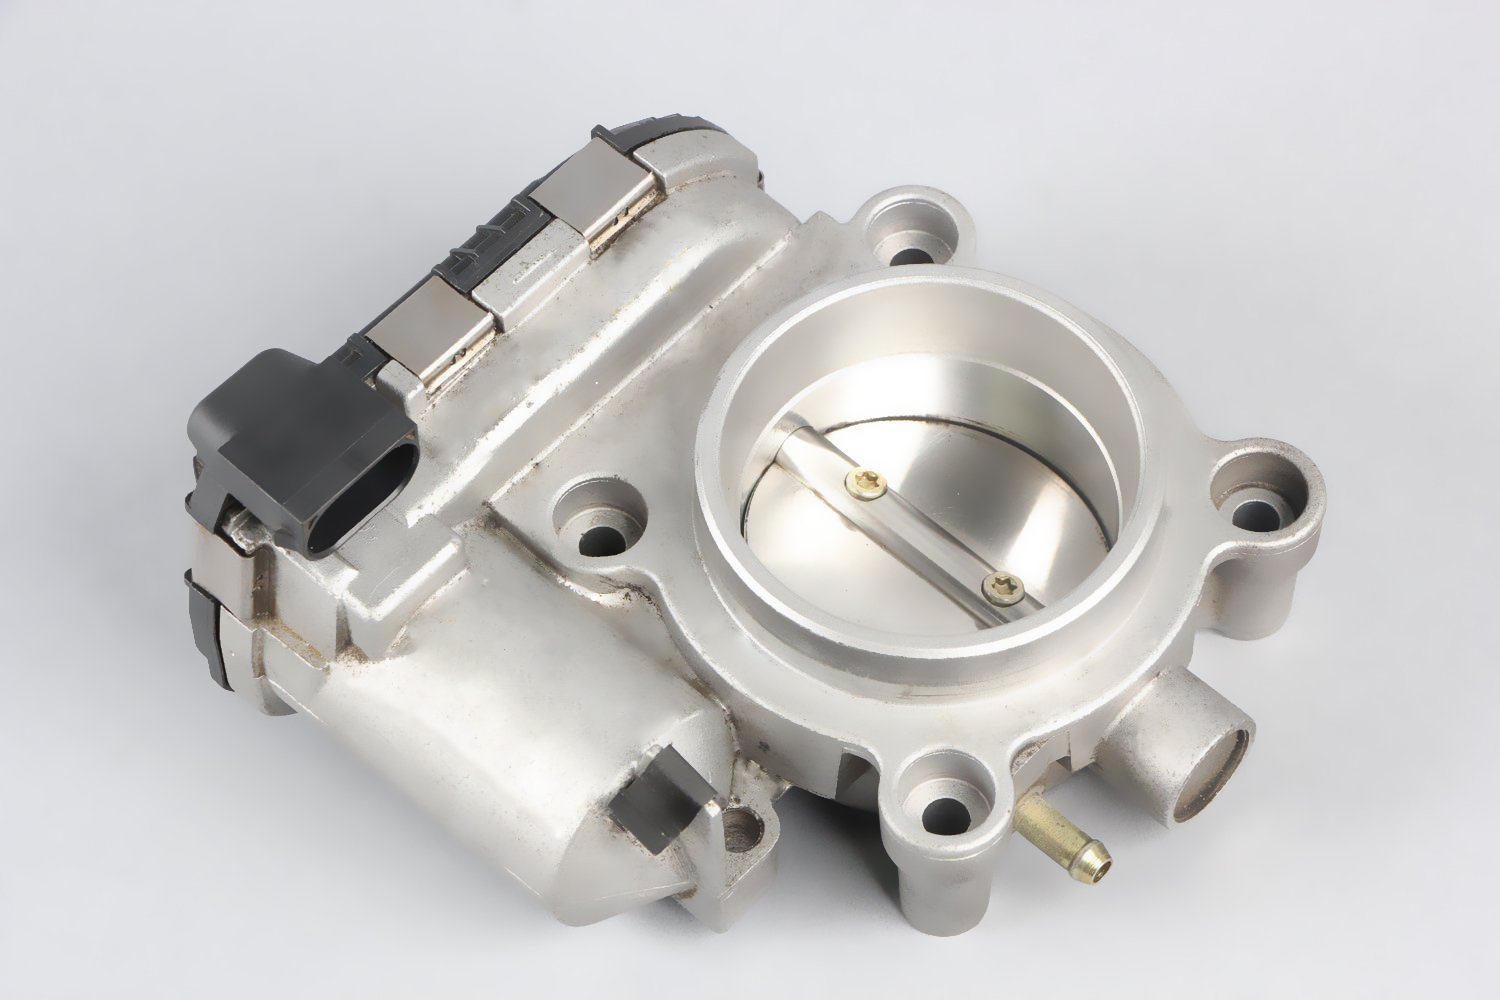 Throttle Body A1111410125/0280750021 for Mercedes Benz W202, W210 R170 SLK230 C230